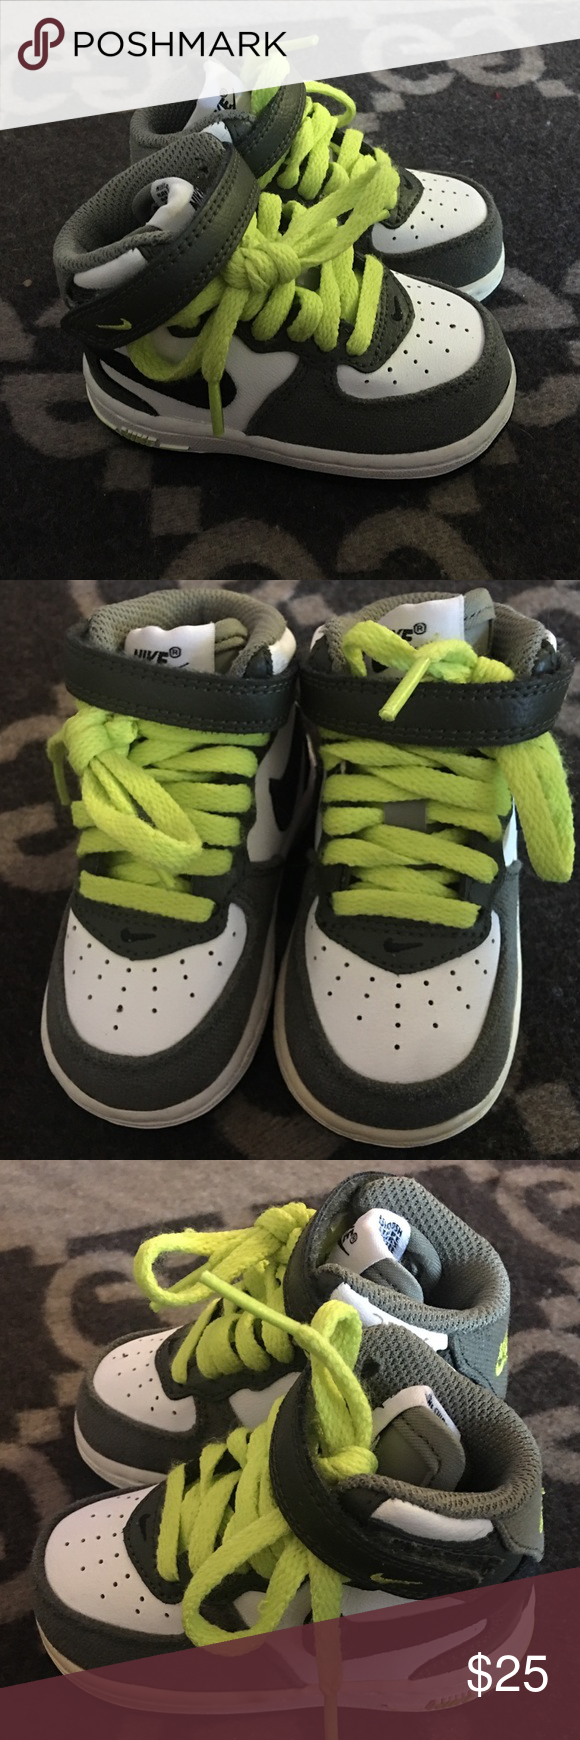 Colorful Nike sneakers with laces and Velcro strap